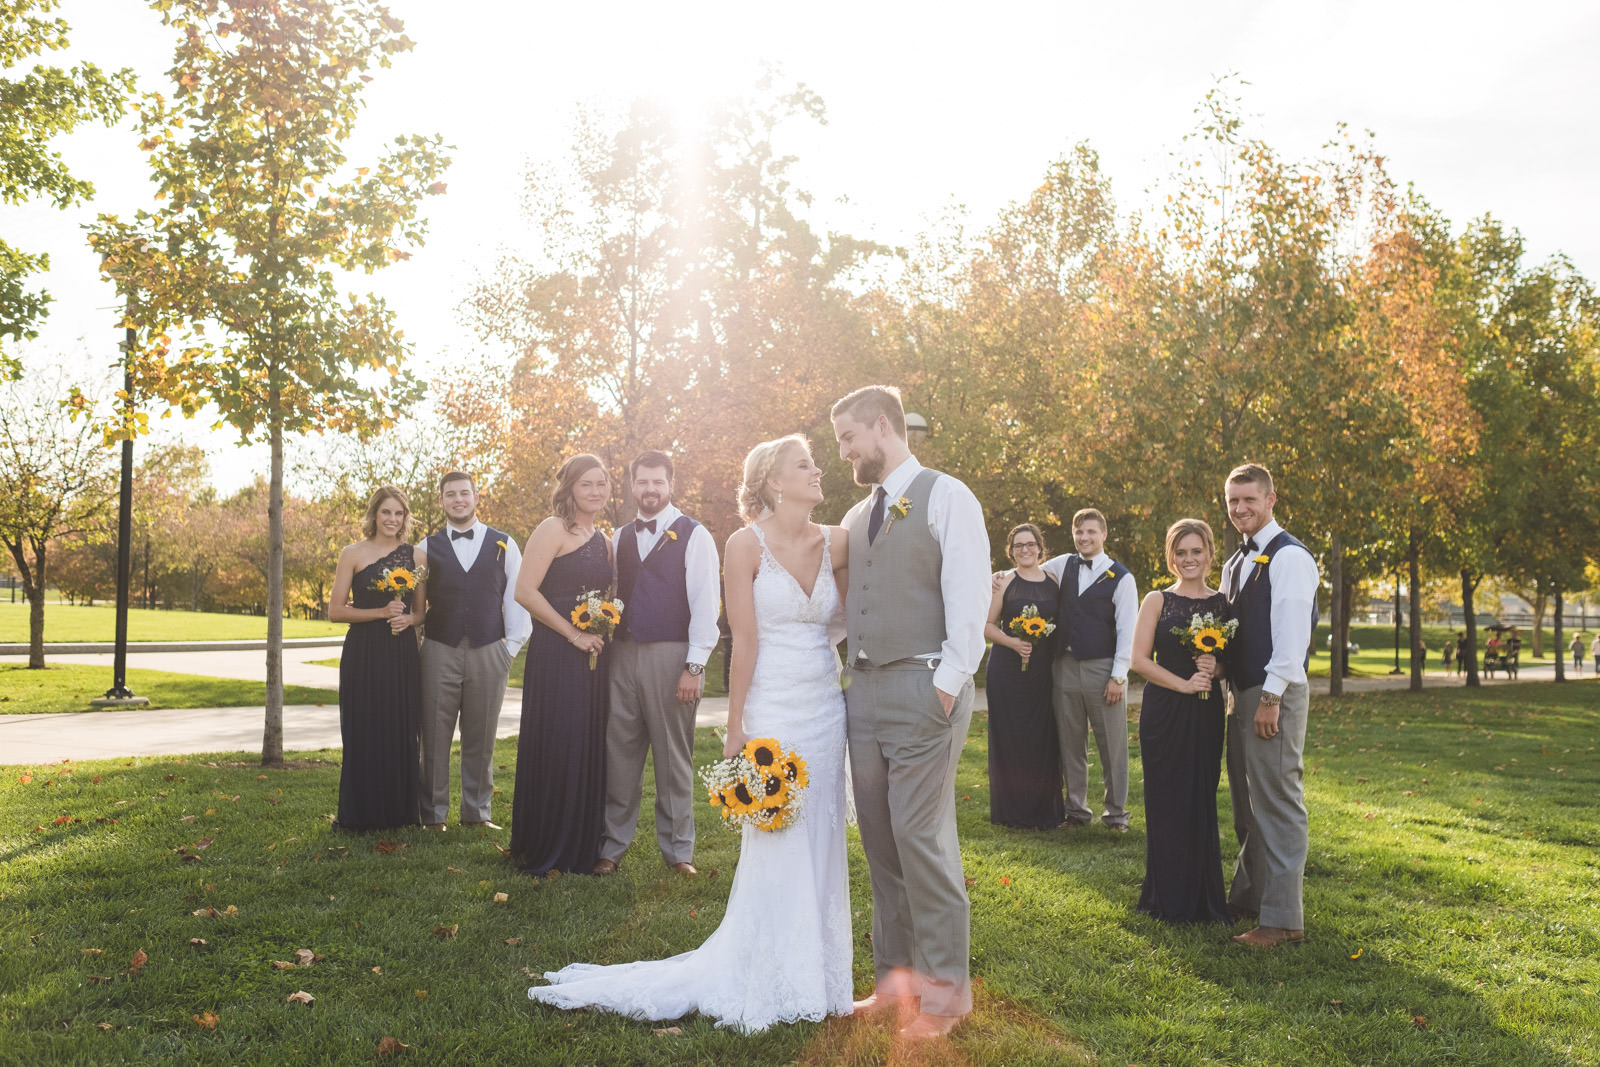 Spencer and Kristen Primos Event Center Wedding Indianapolis Indiana  - www.RHatfieldPhotography.com